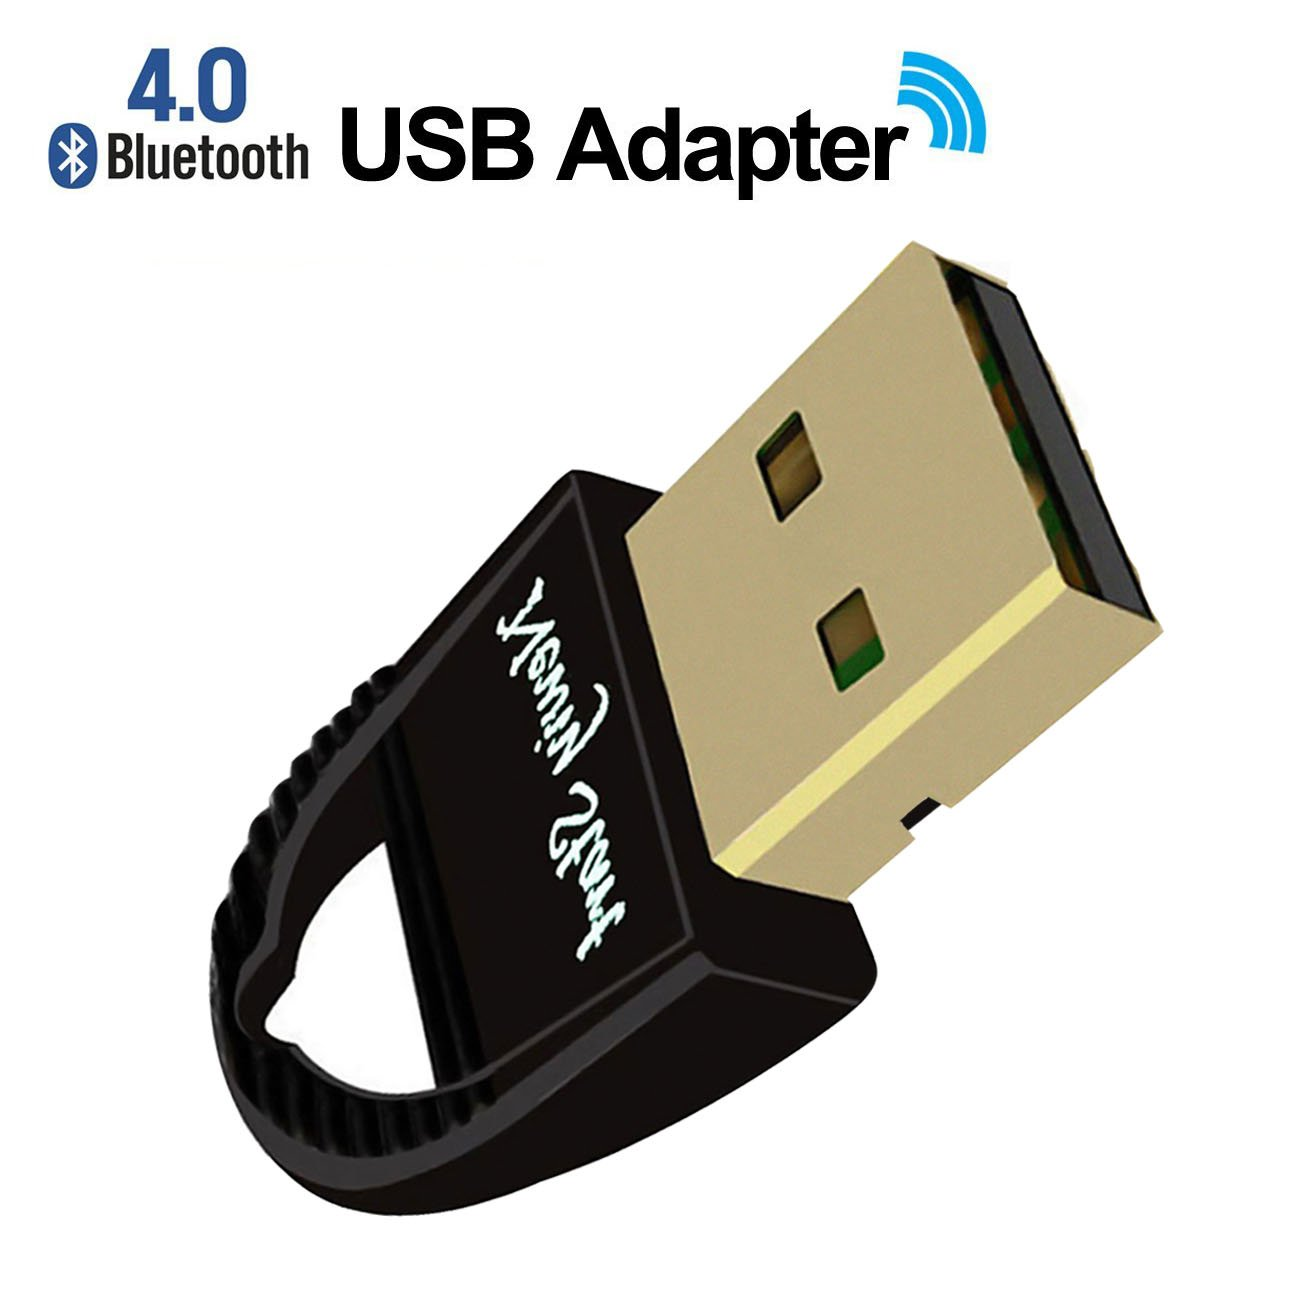 USB Bluetooth 4.0 Adapter Wireless Dongle for PC,Laptop,Speakers,Keyboard, Mouse, Headphone/Headset,Smartphones,tablets iPad,Support All Windows 10 8 7 XP vista [2 Year Warranty] by Newiy Start